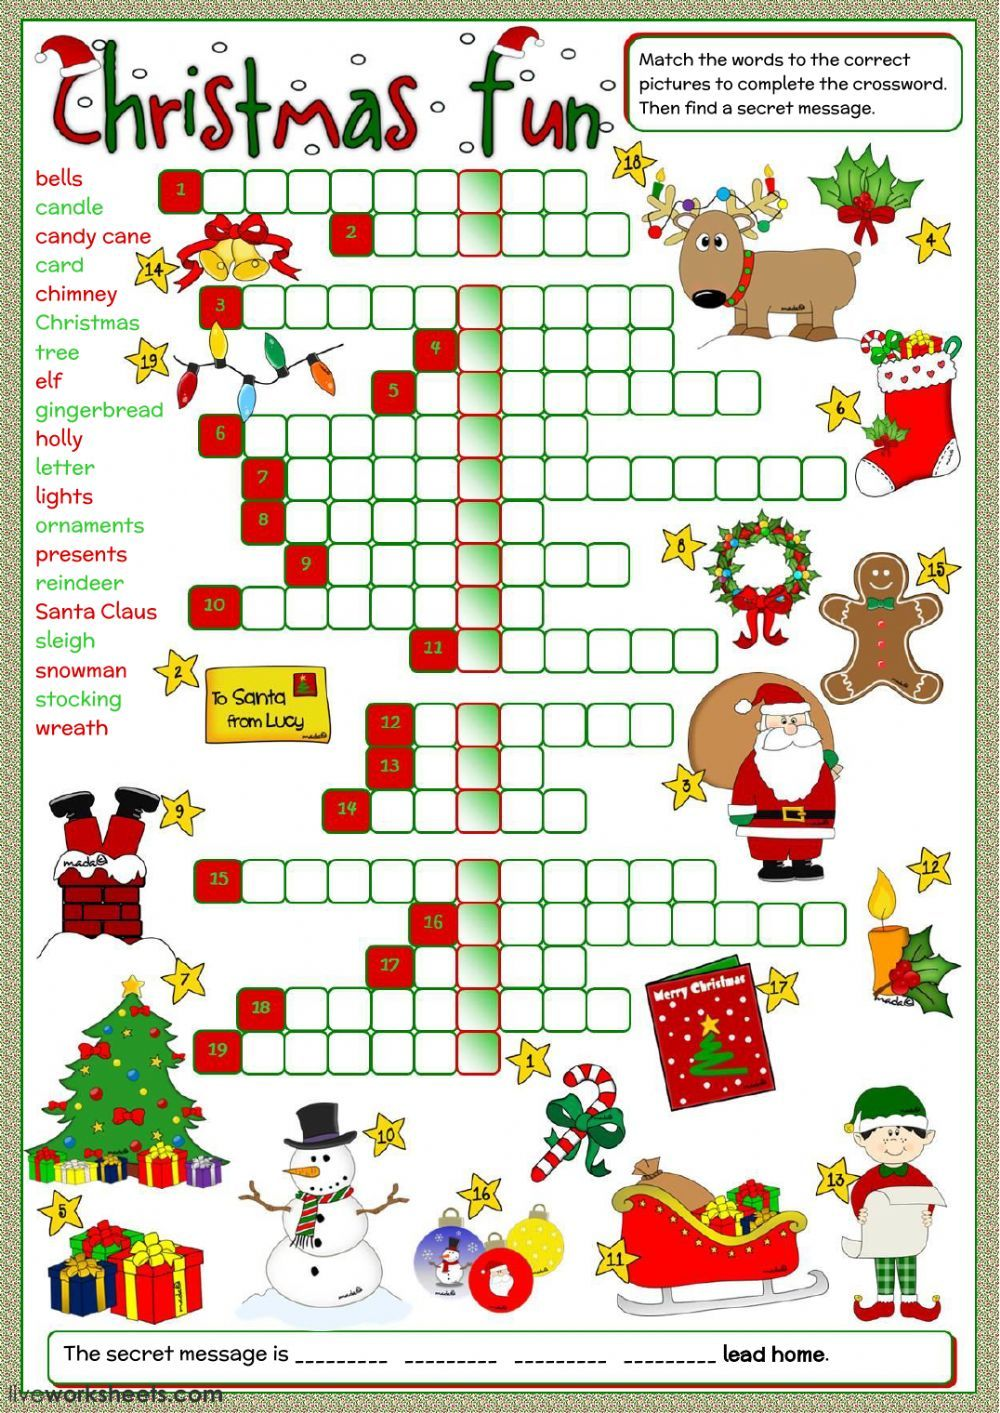 Christmas Interactive And Downloadable Worksheet You Can Do The Exercises Online Or Download The Wor Christmas Worksheets Christmas School Christmas Crossword